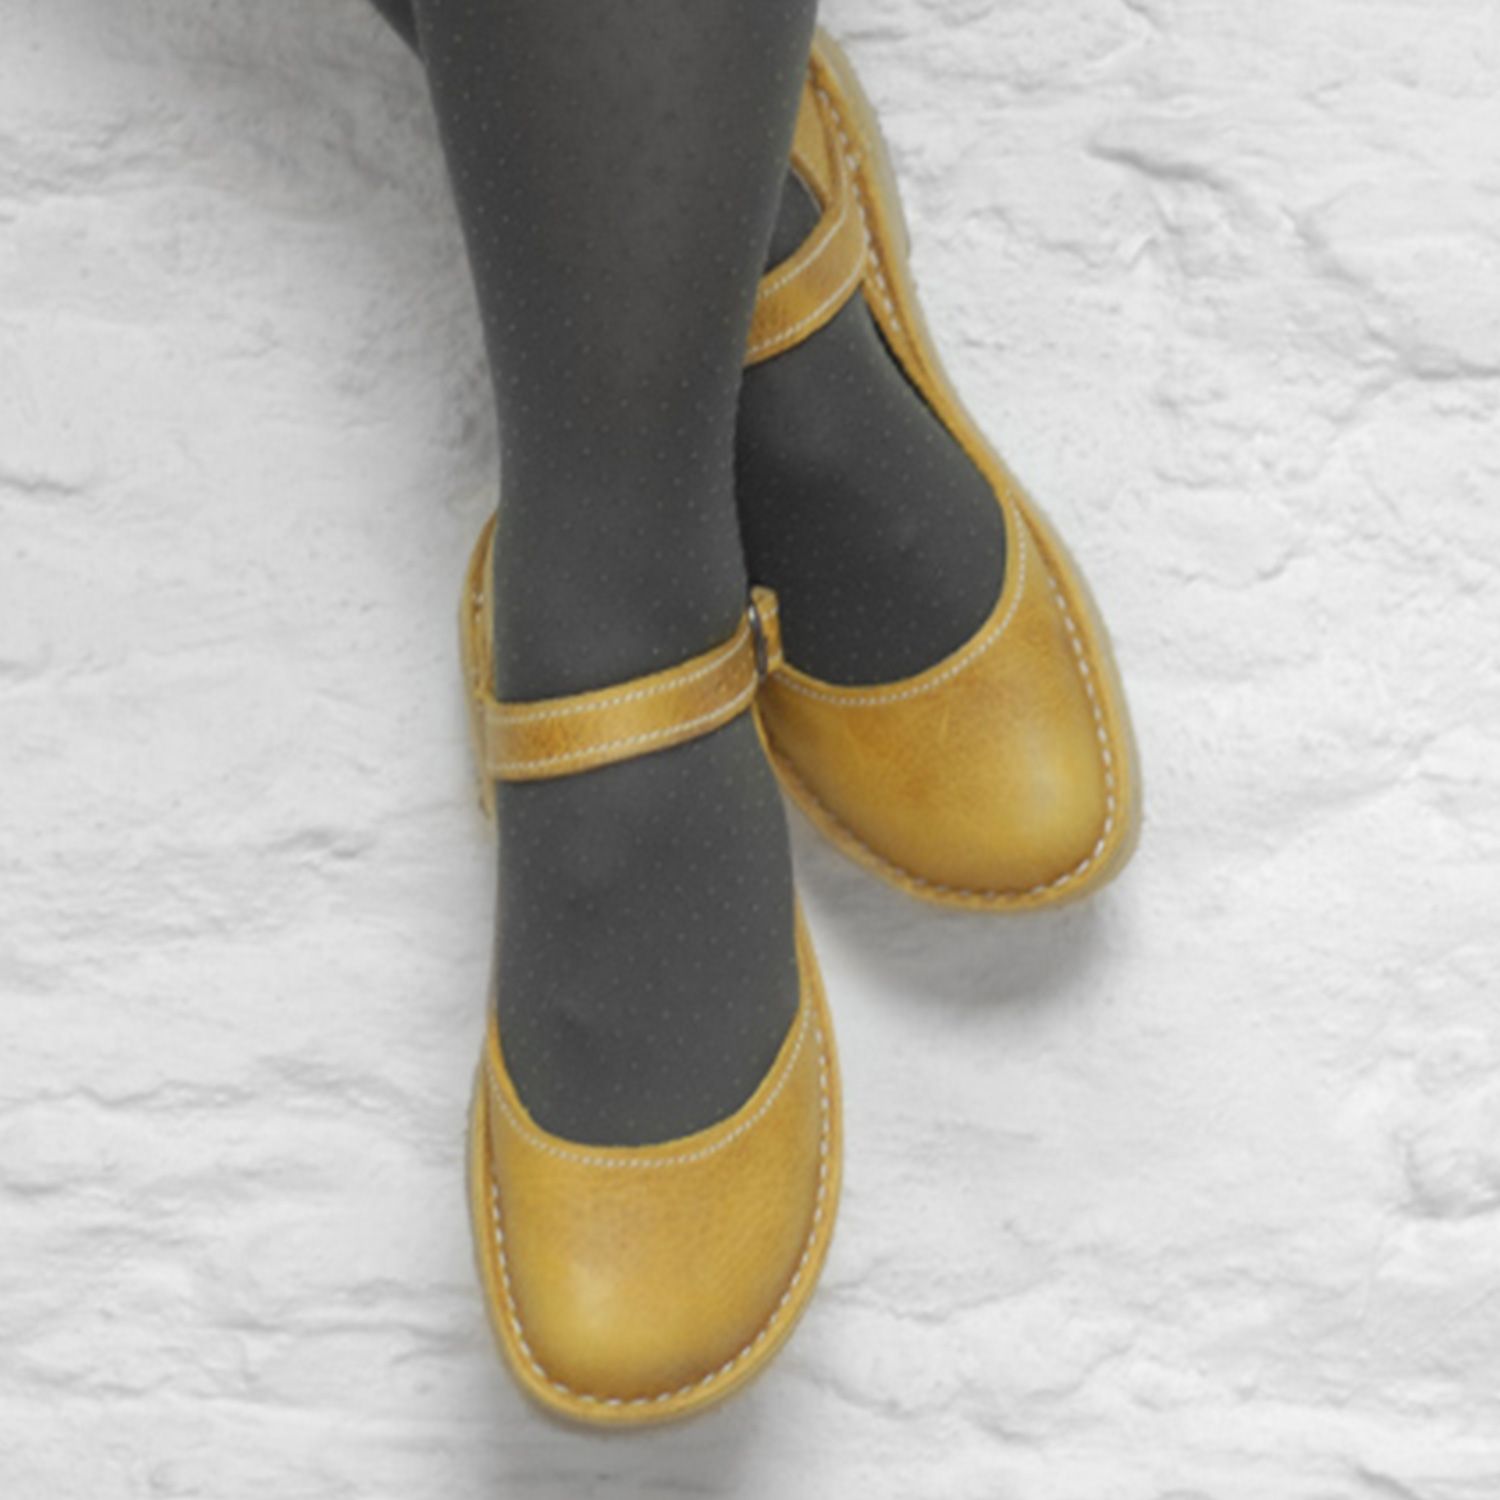 Conker Shoes Online